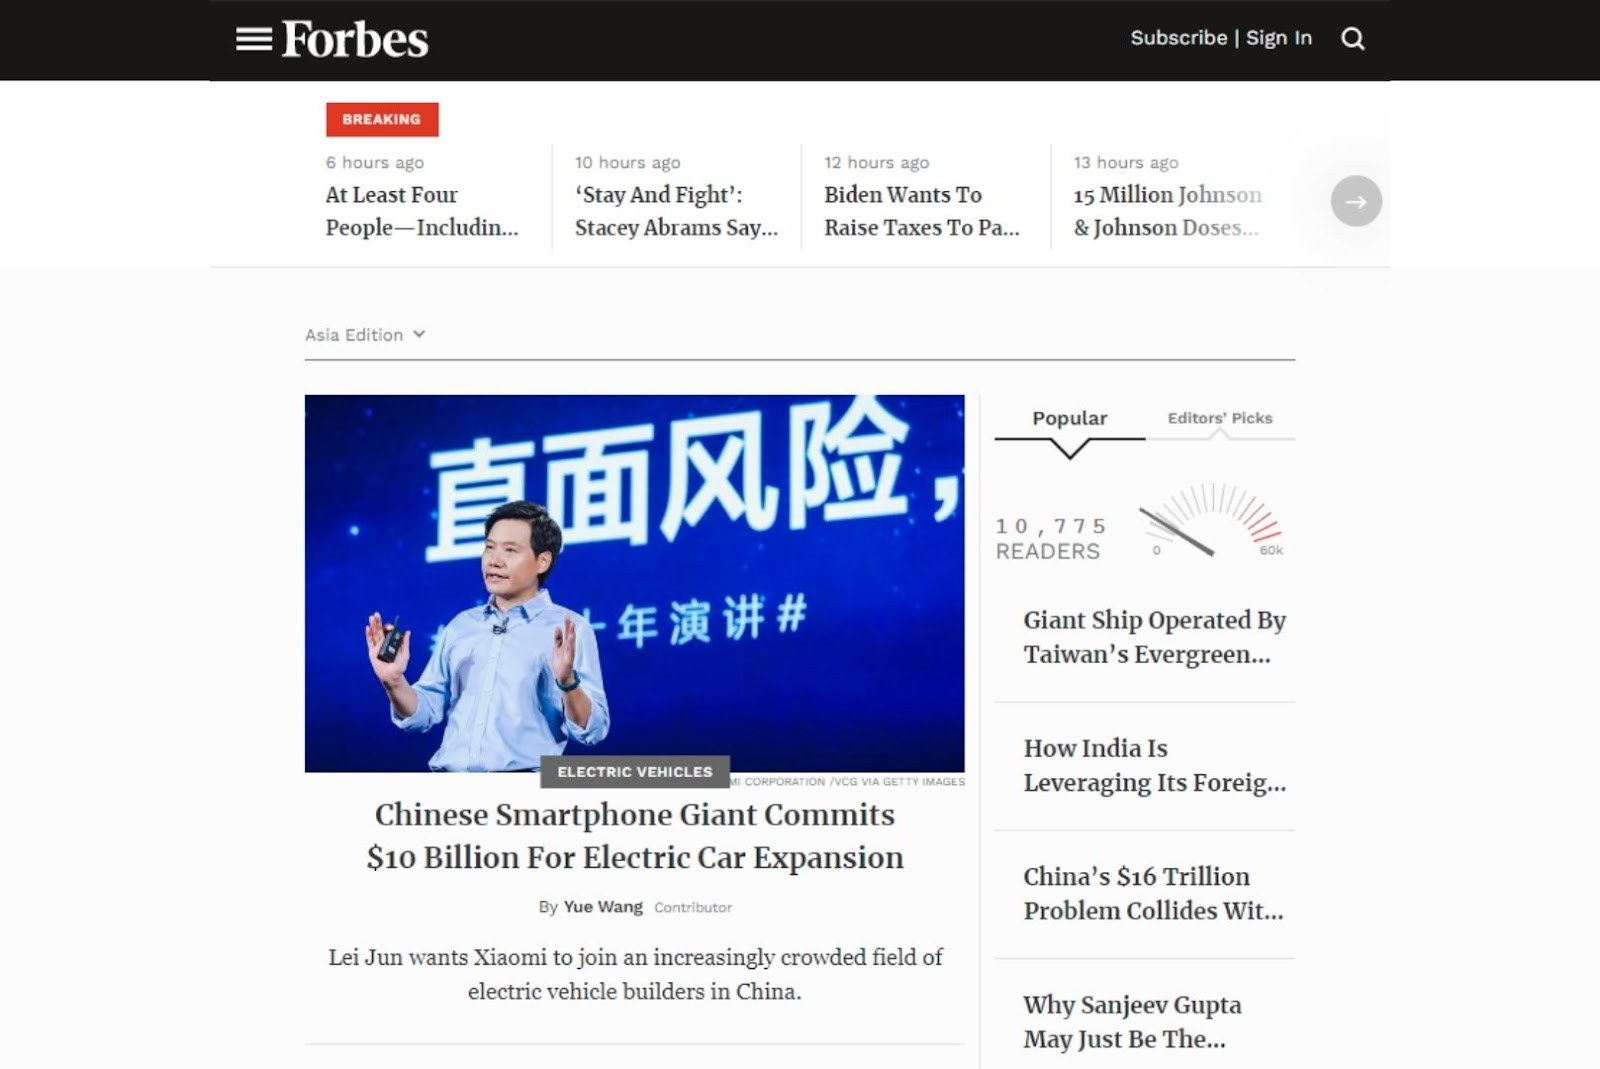 forbes web app built in angular